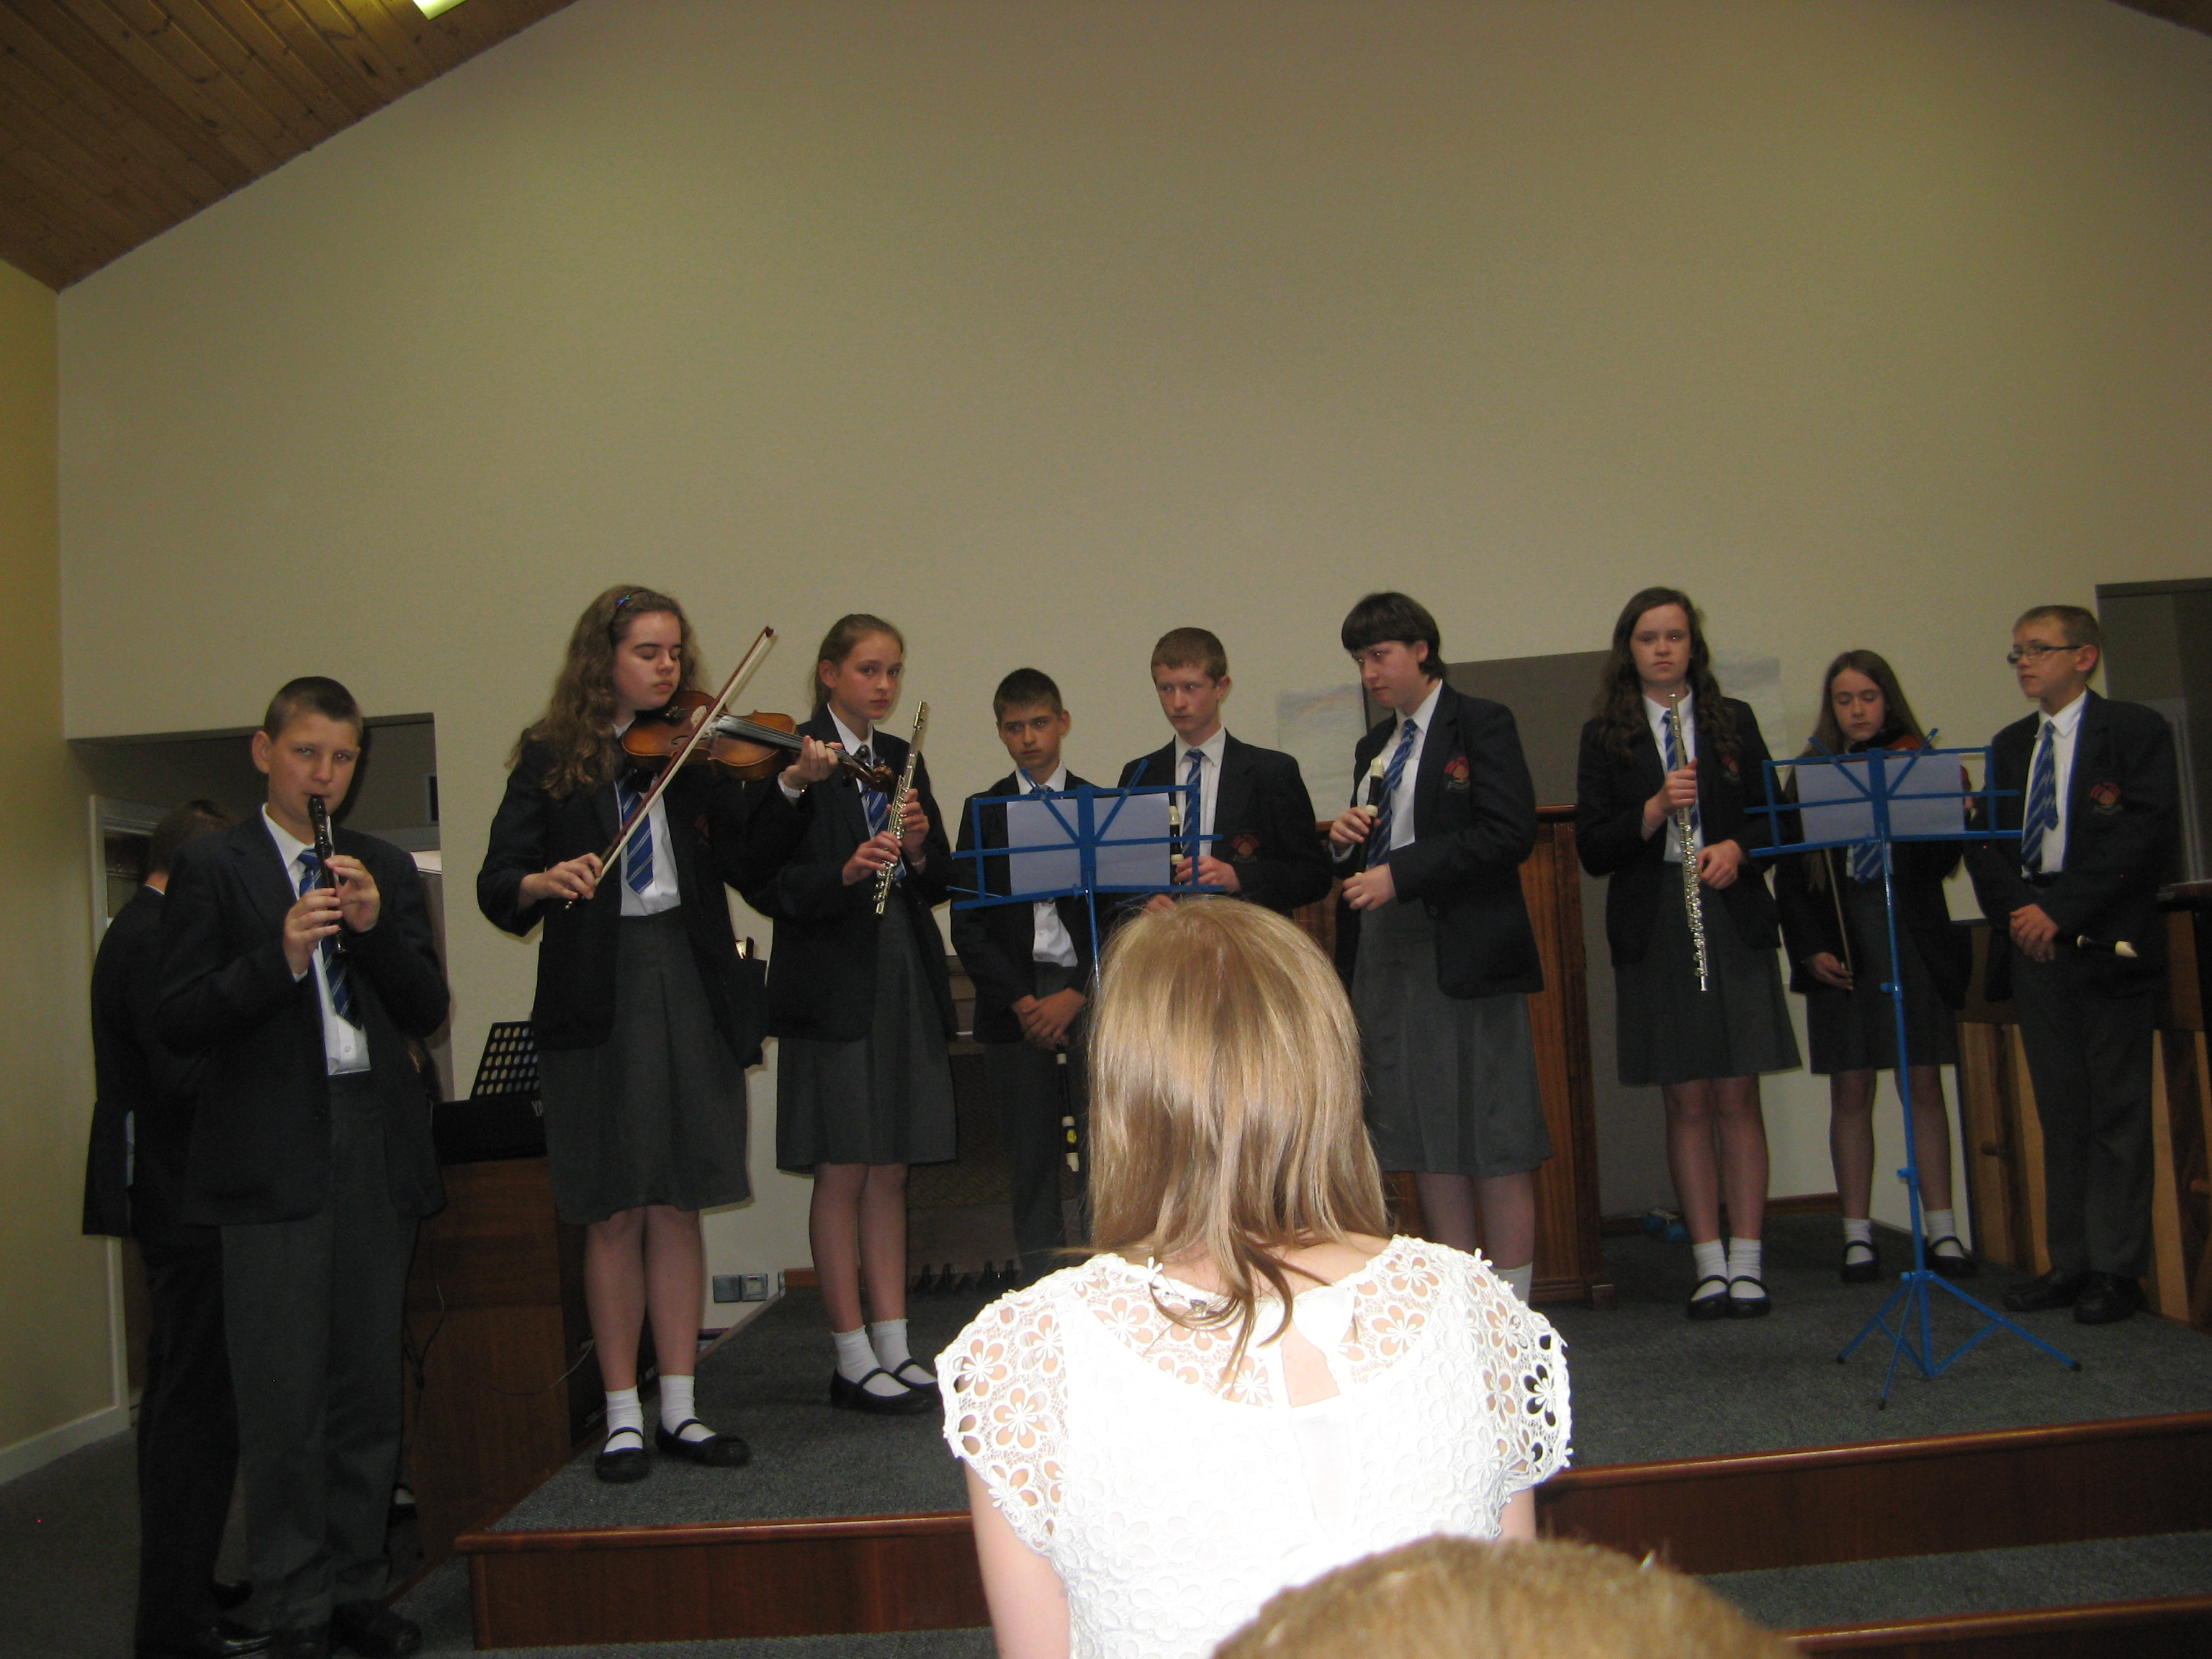 KS3 performing their own composition